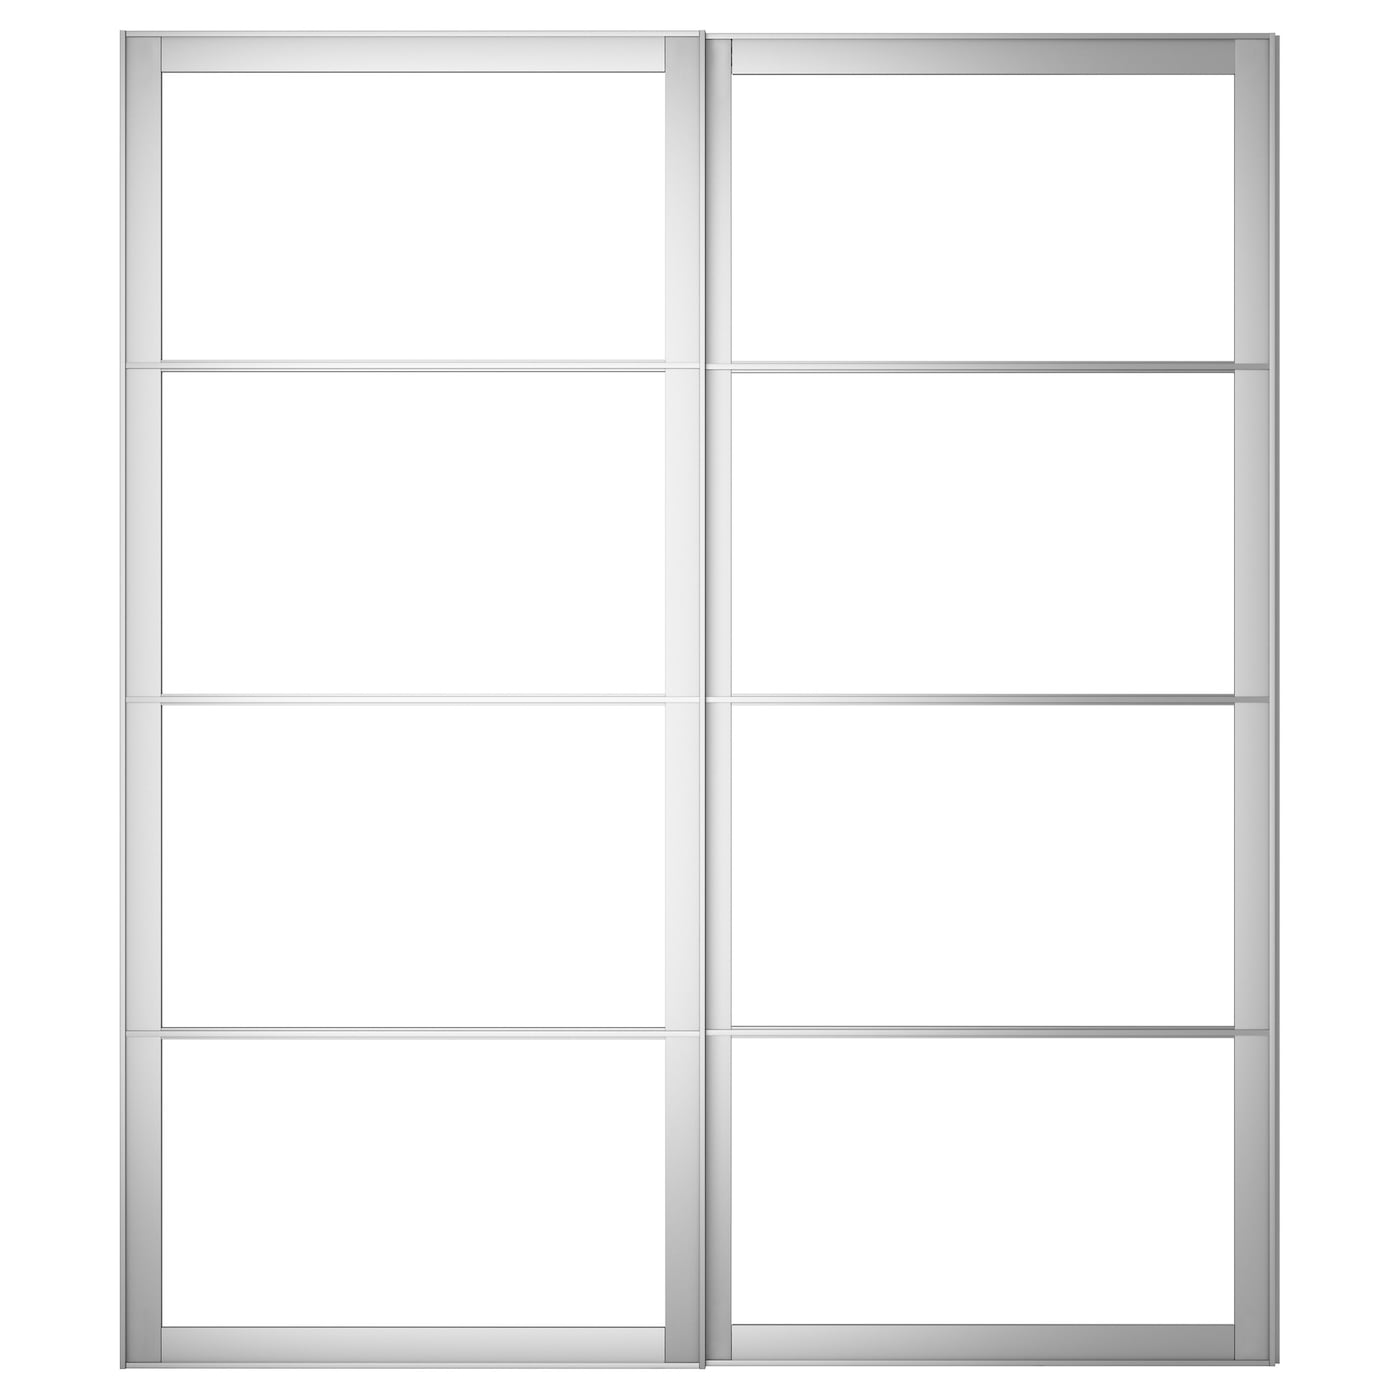 Pax Pair Of Sliding Door Frames W Rail Aluminium 200×236 Cm Ikea # Notice Montage Ikea